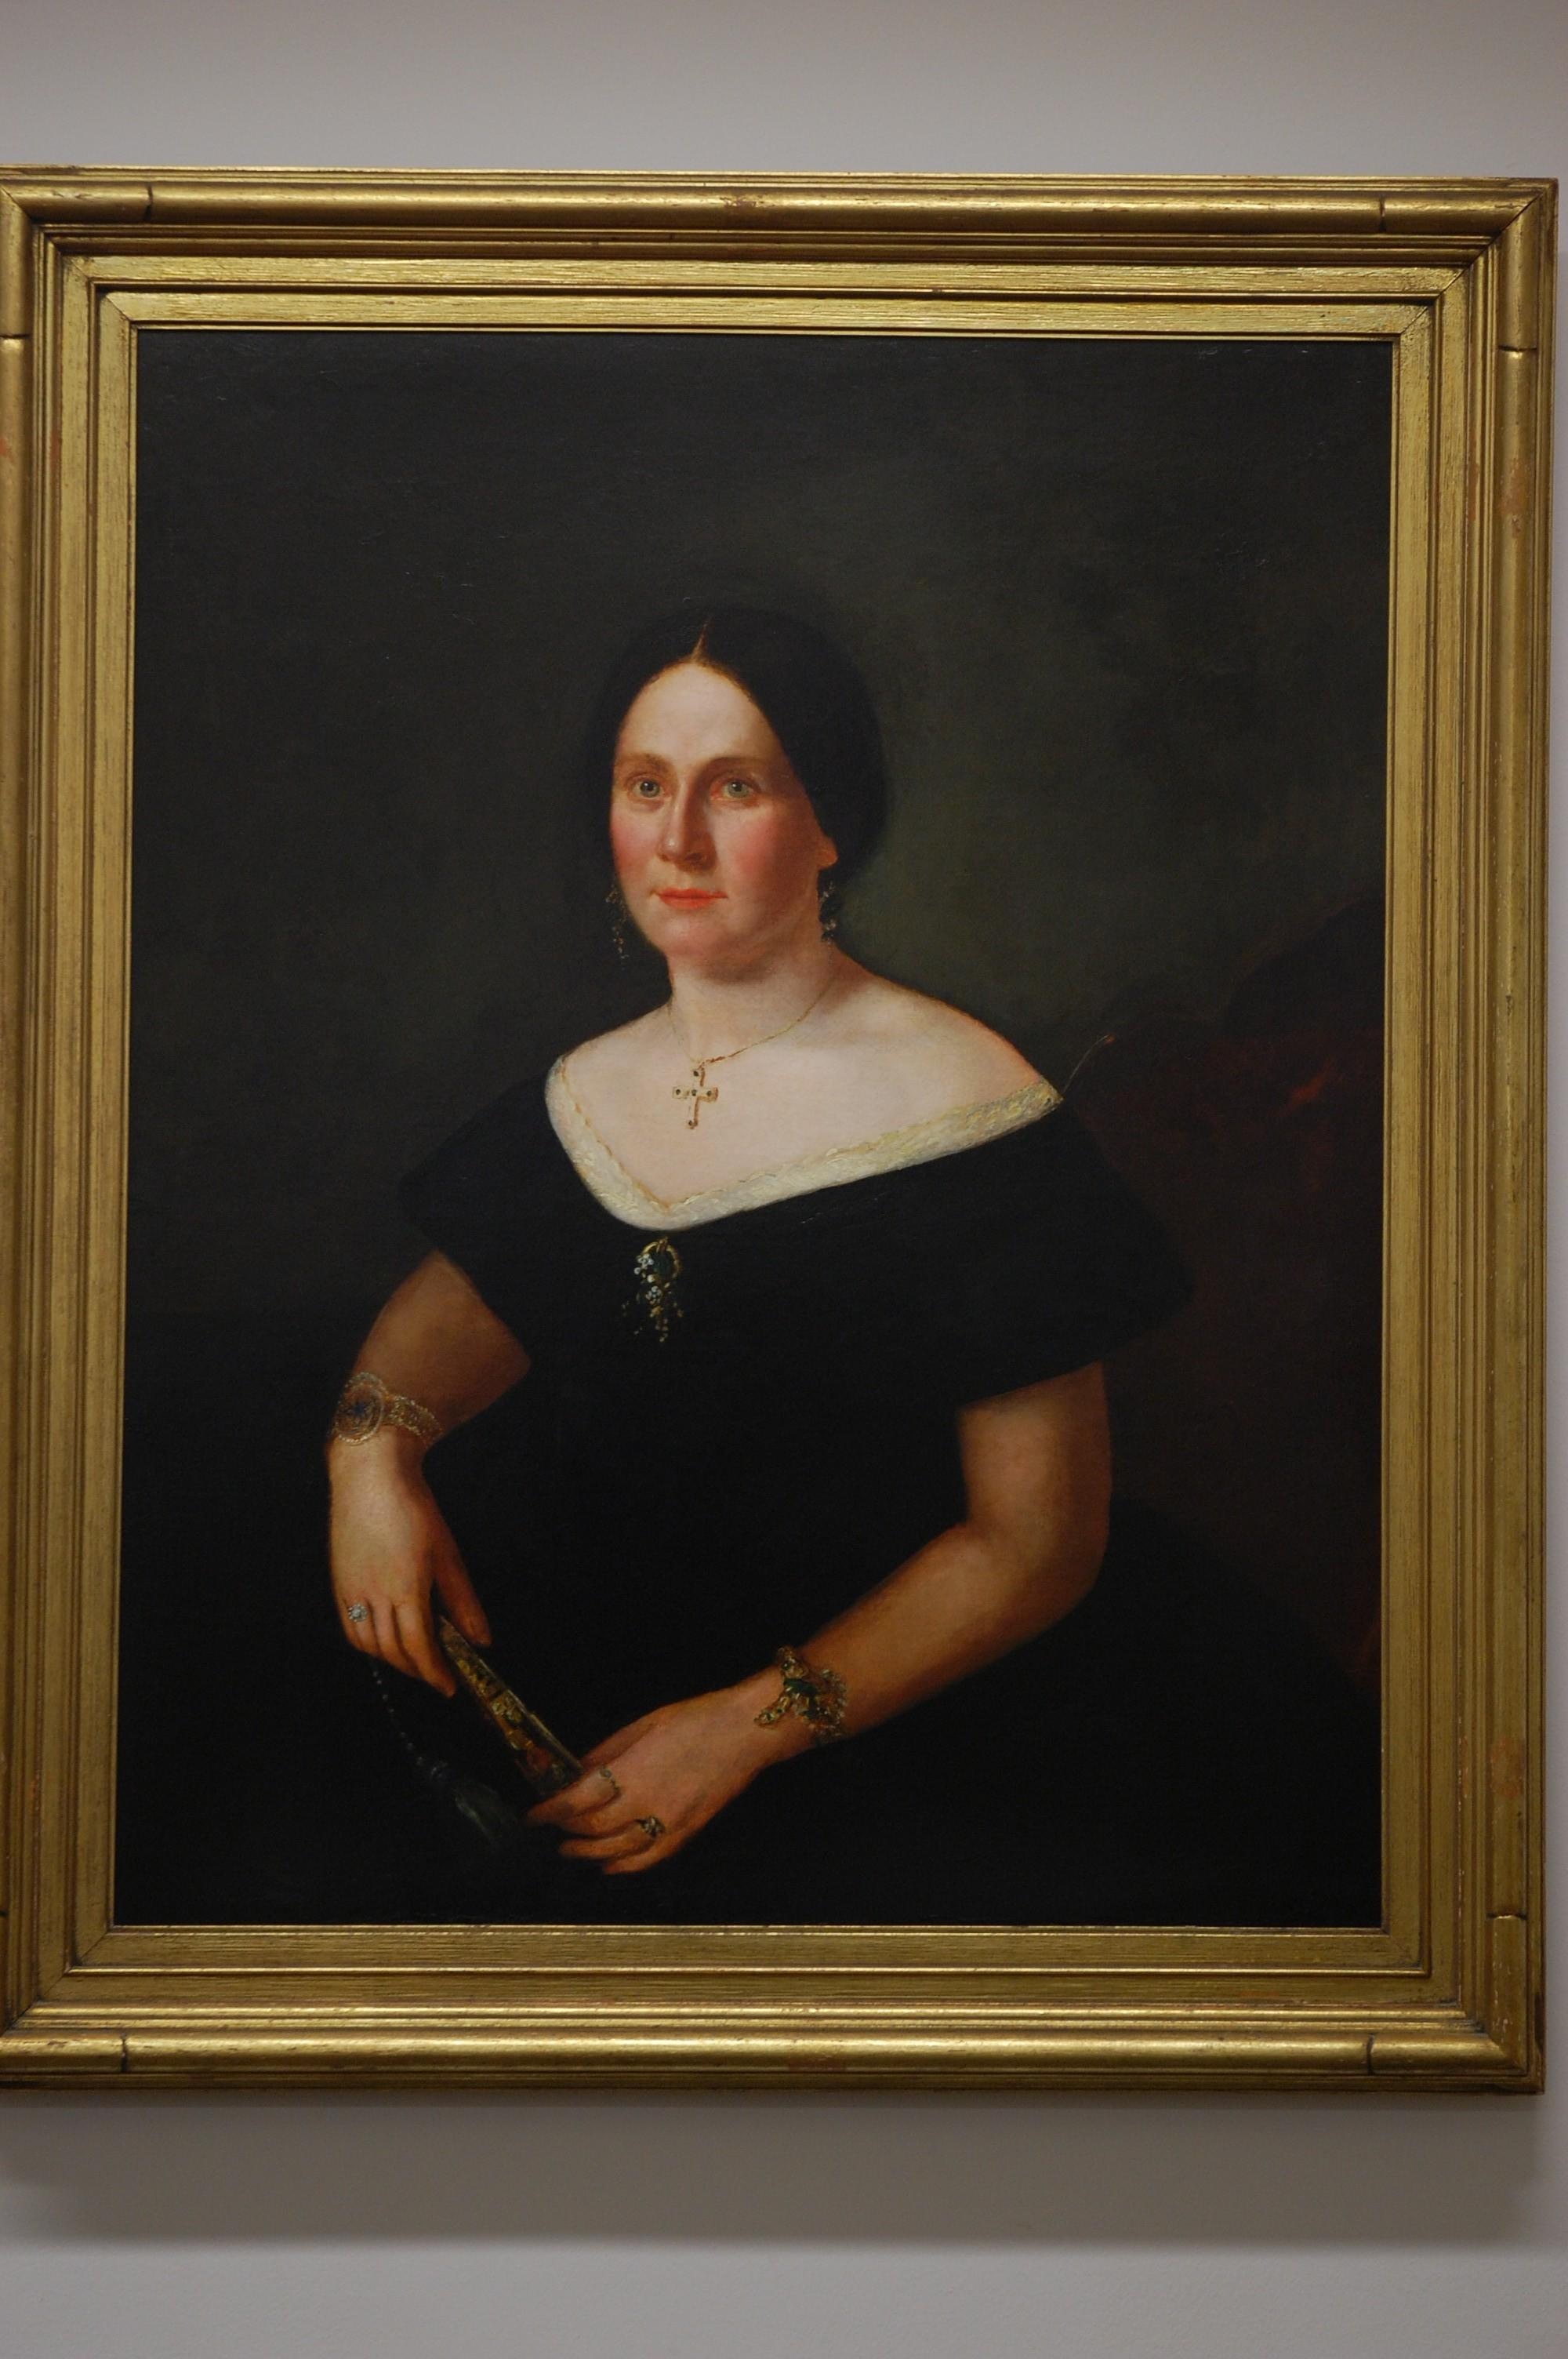 Restored image of the portrait once thought to be of Mary Todd Lincoln